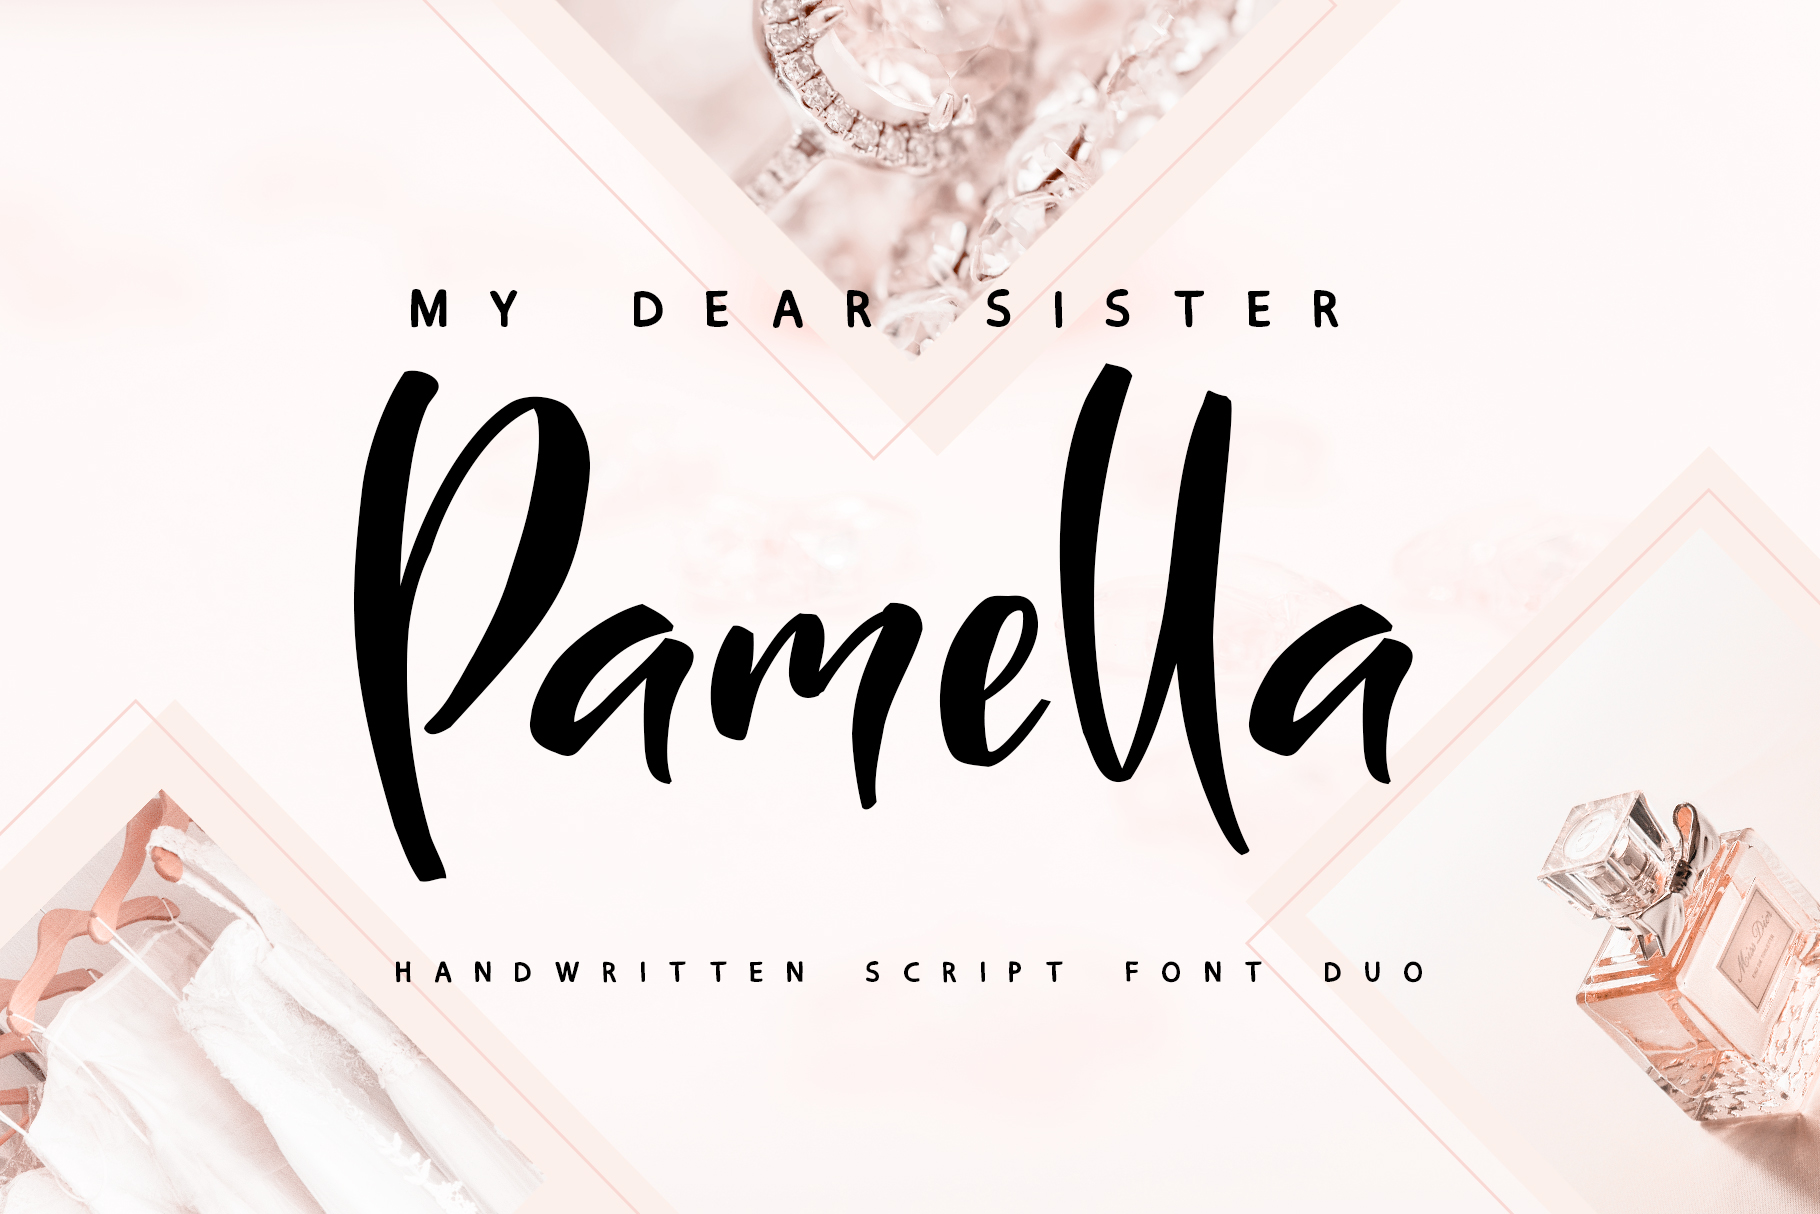 Sister Pamella Font Duo example image 1